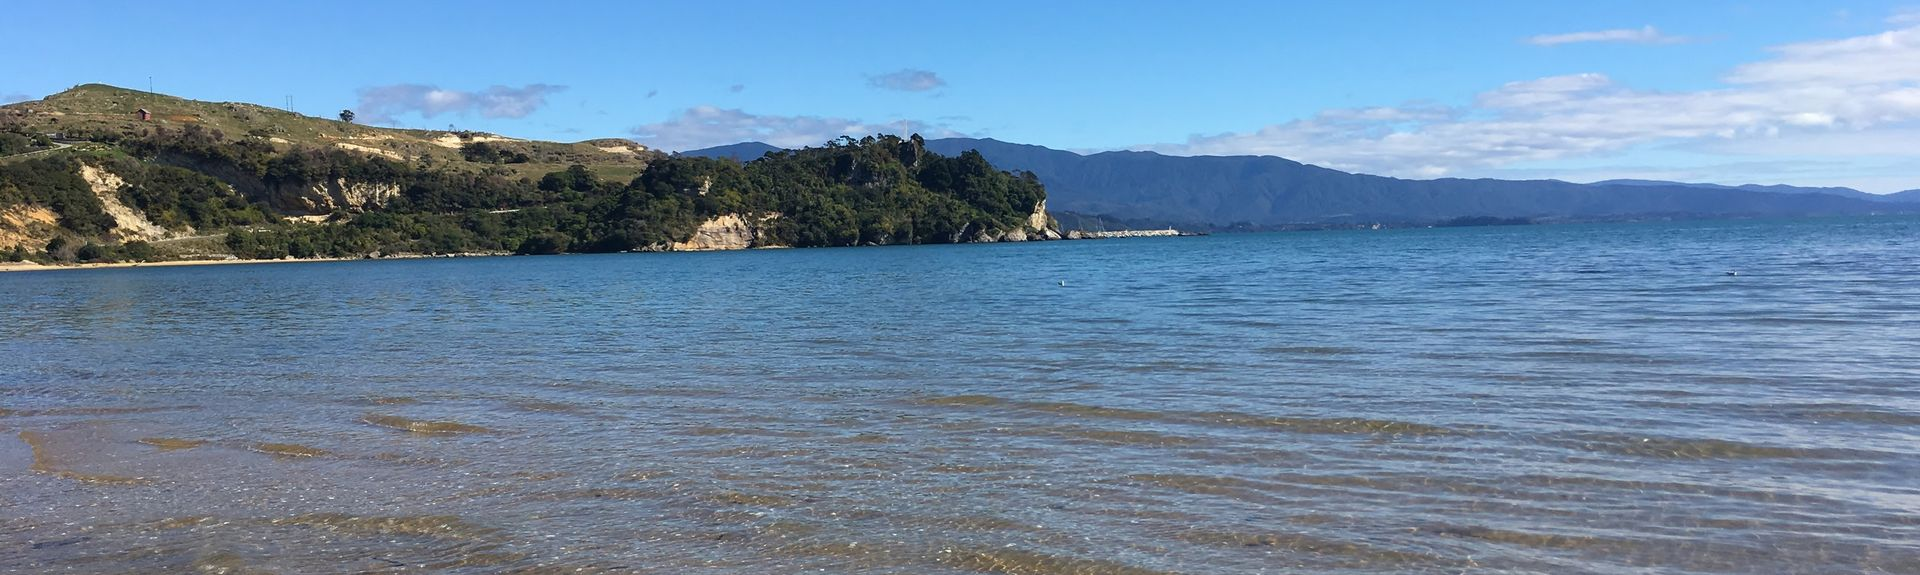 Takaka, Tasman-regionen, New Zealand